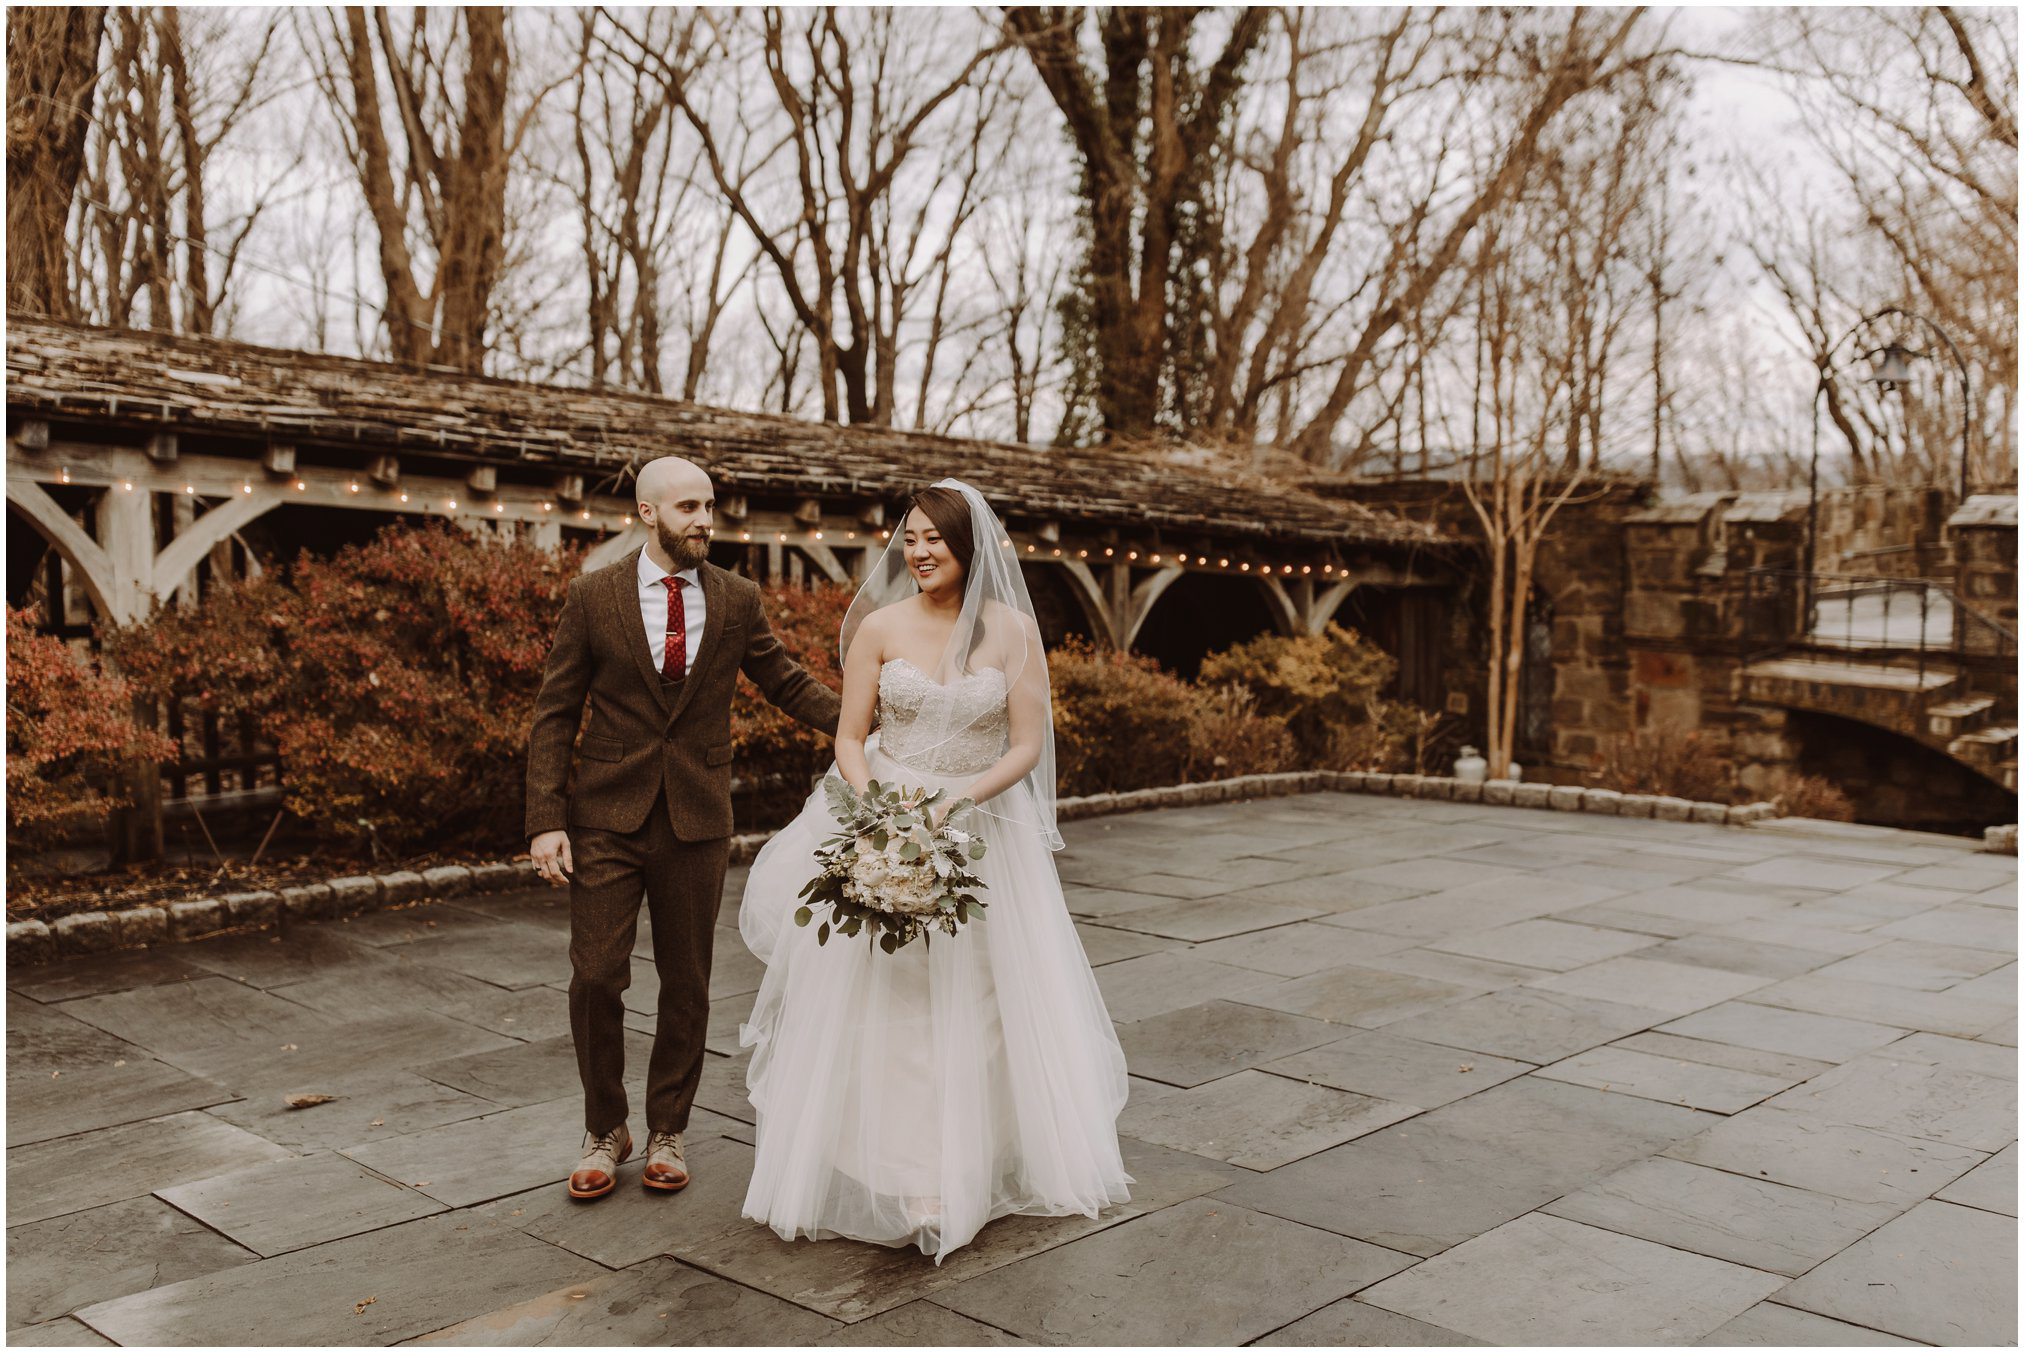 Bride and Groom Pictures at Cloisters Castle